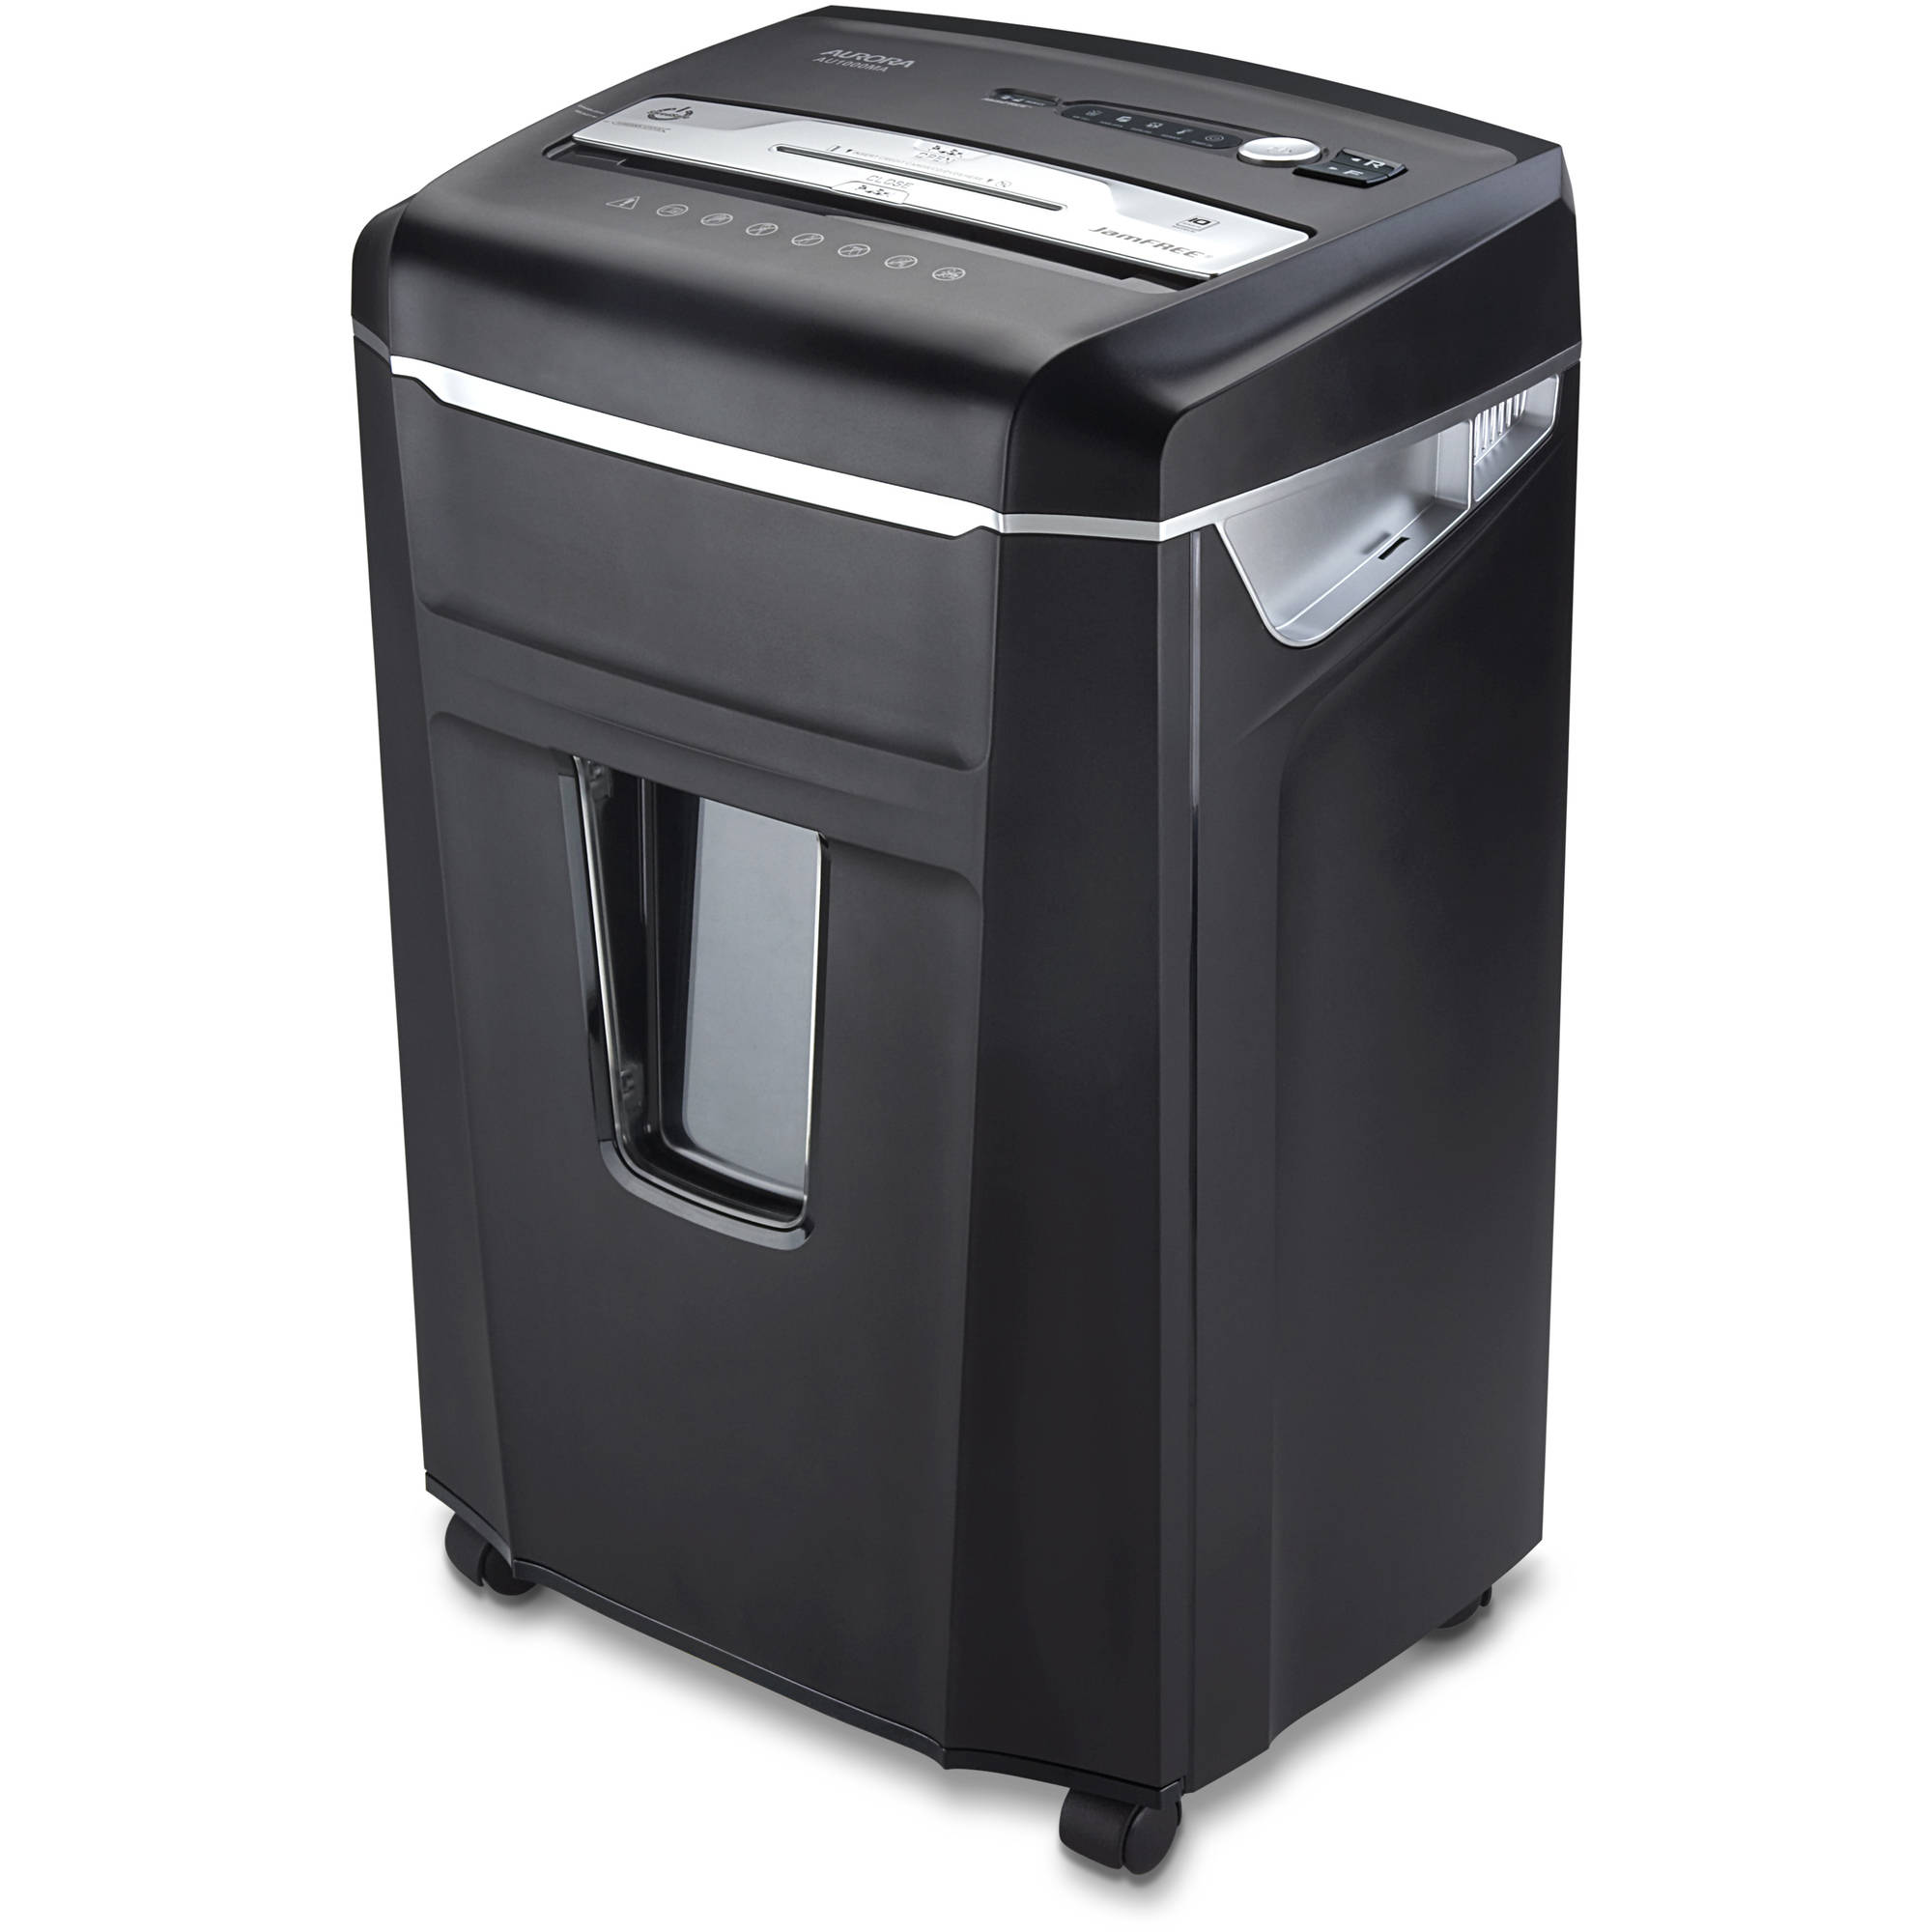 Aurora High Security JamFree AU1000MA 10-Sheet Micro-Cut Paper/CD/Credit Card Shredder with Pull-Out Wastebasket